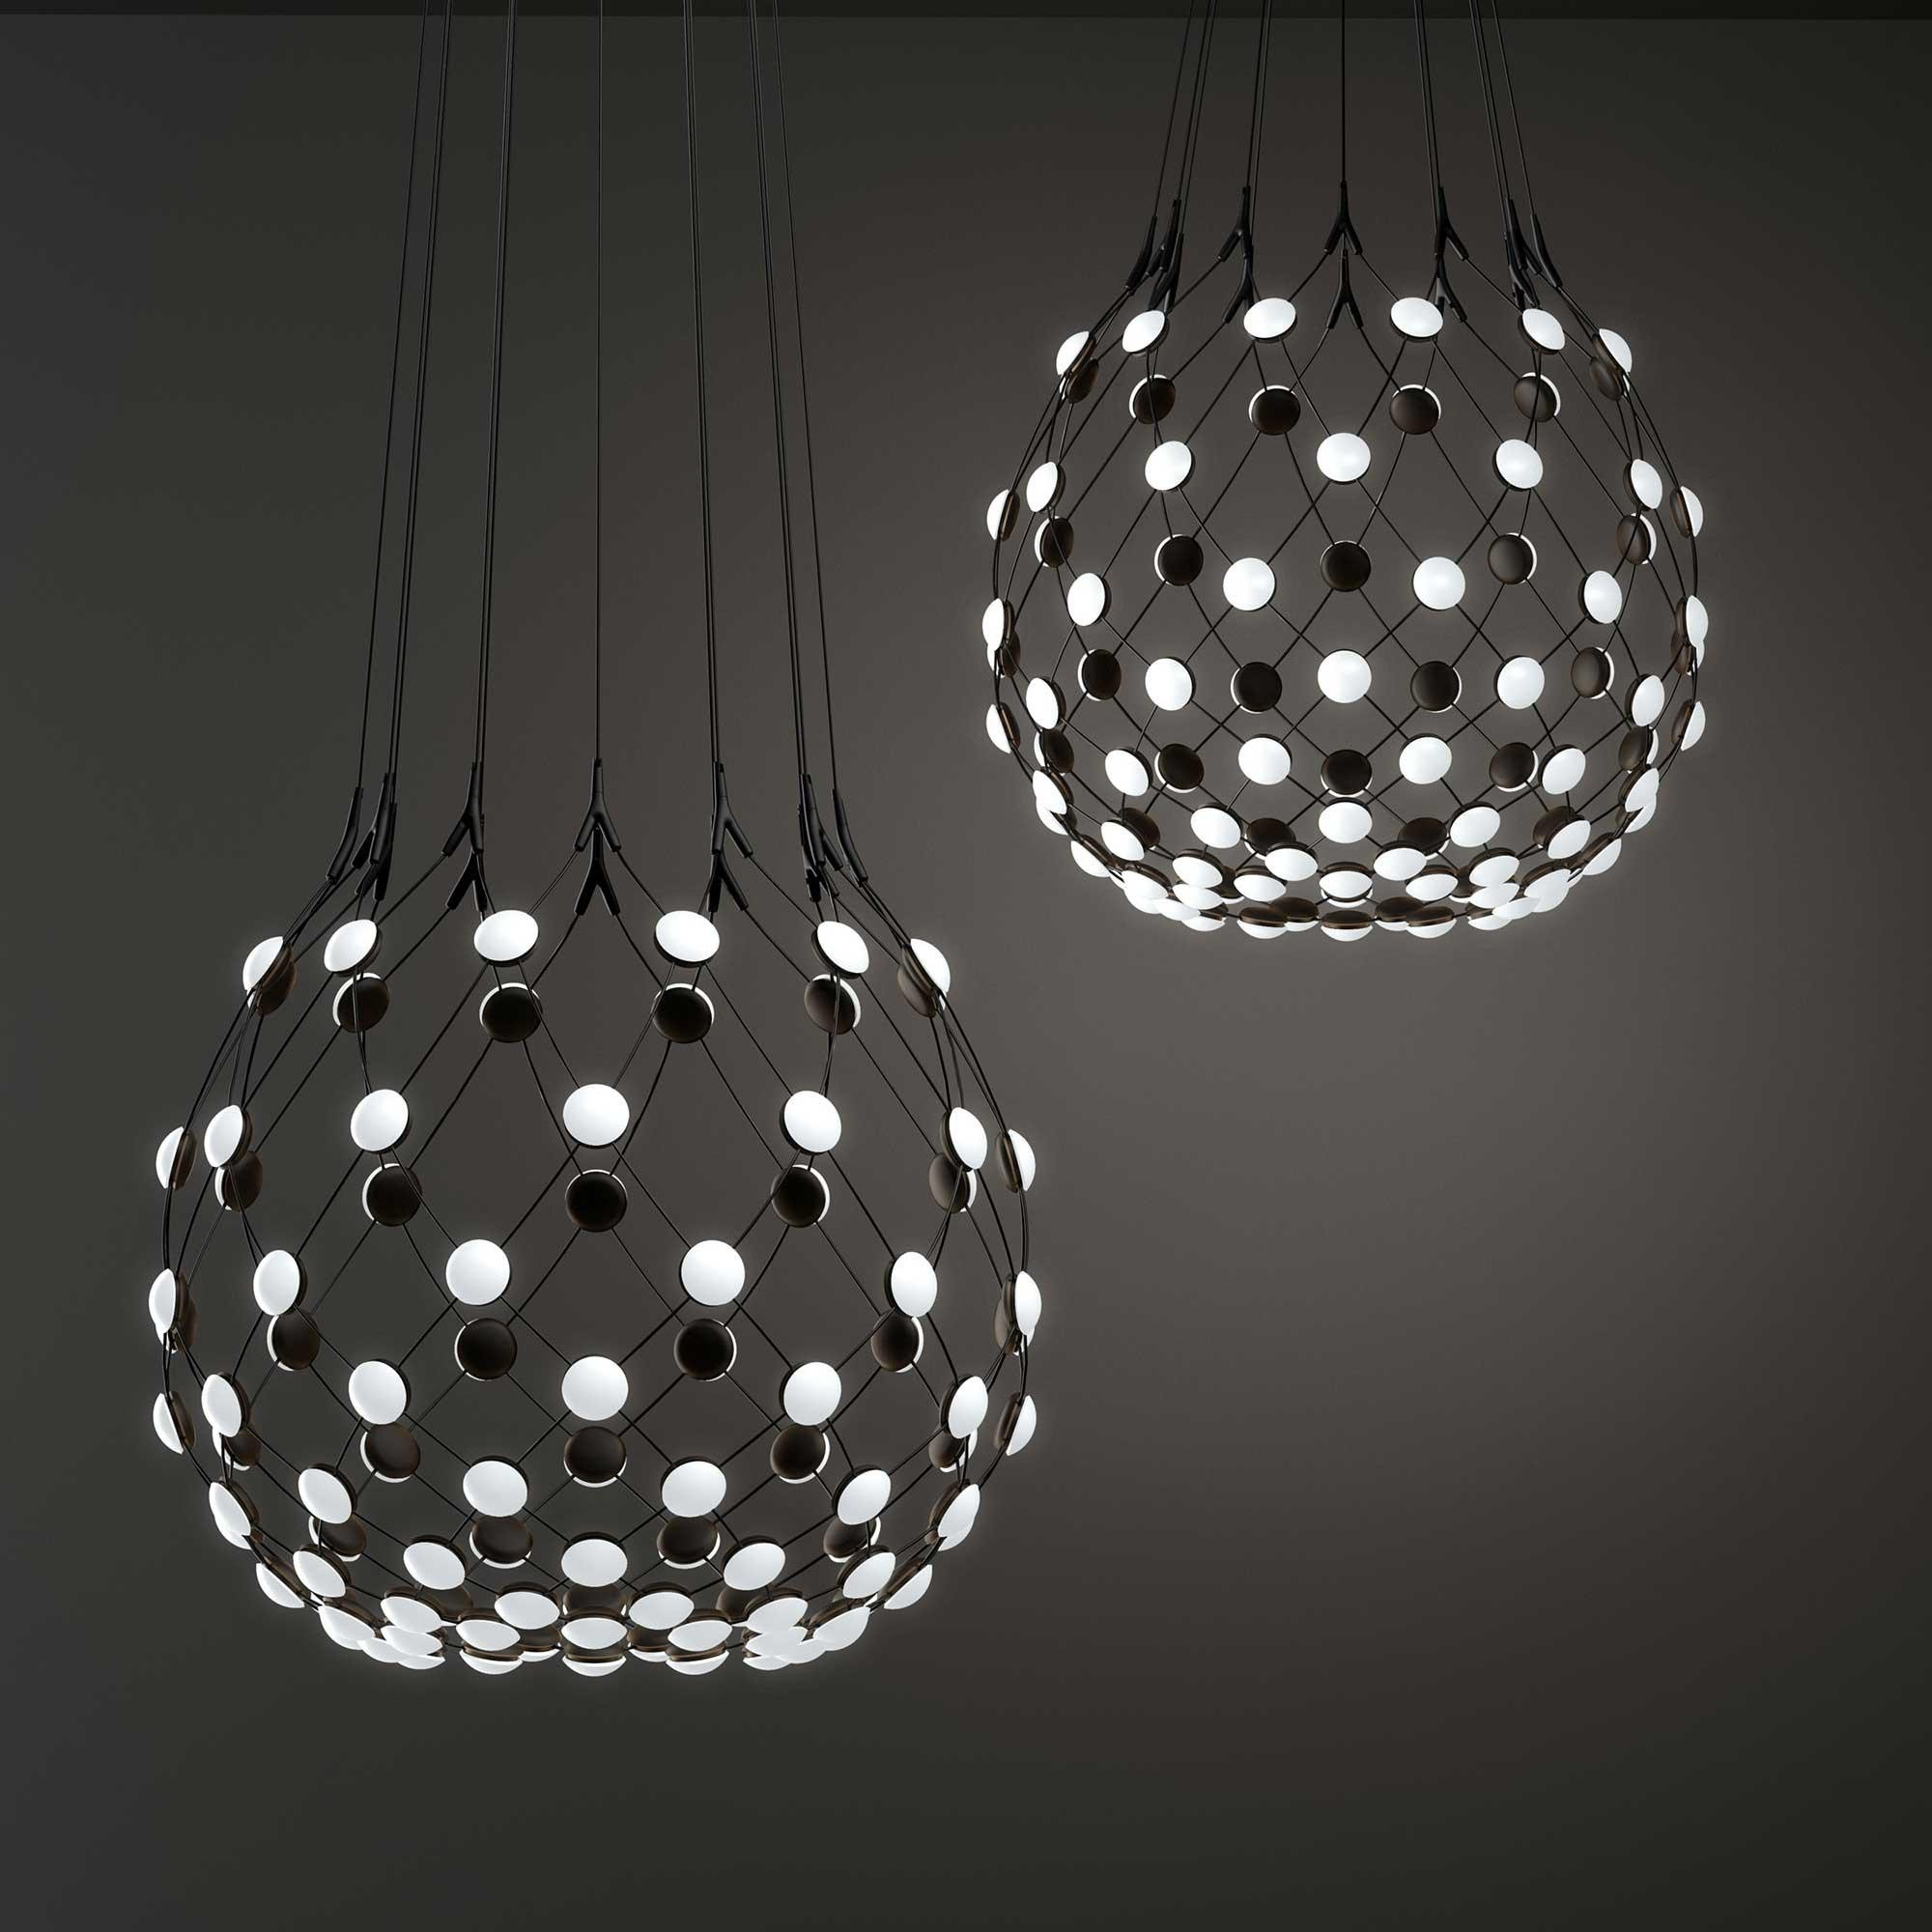 Mesh D86 LED Suspension Lamp